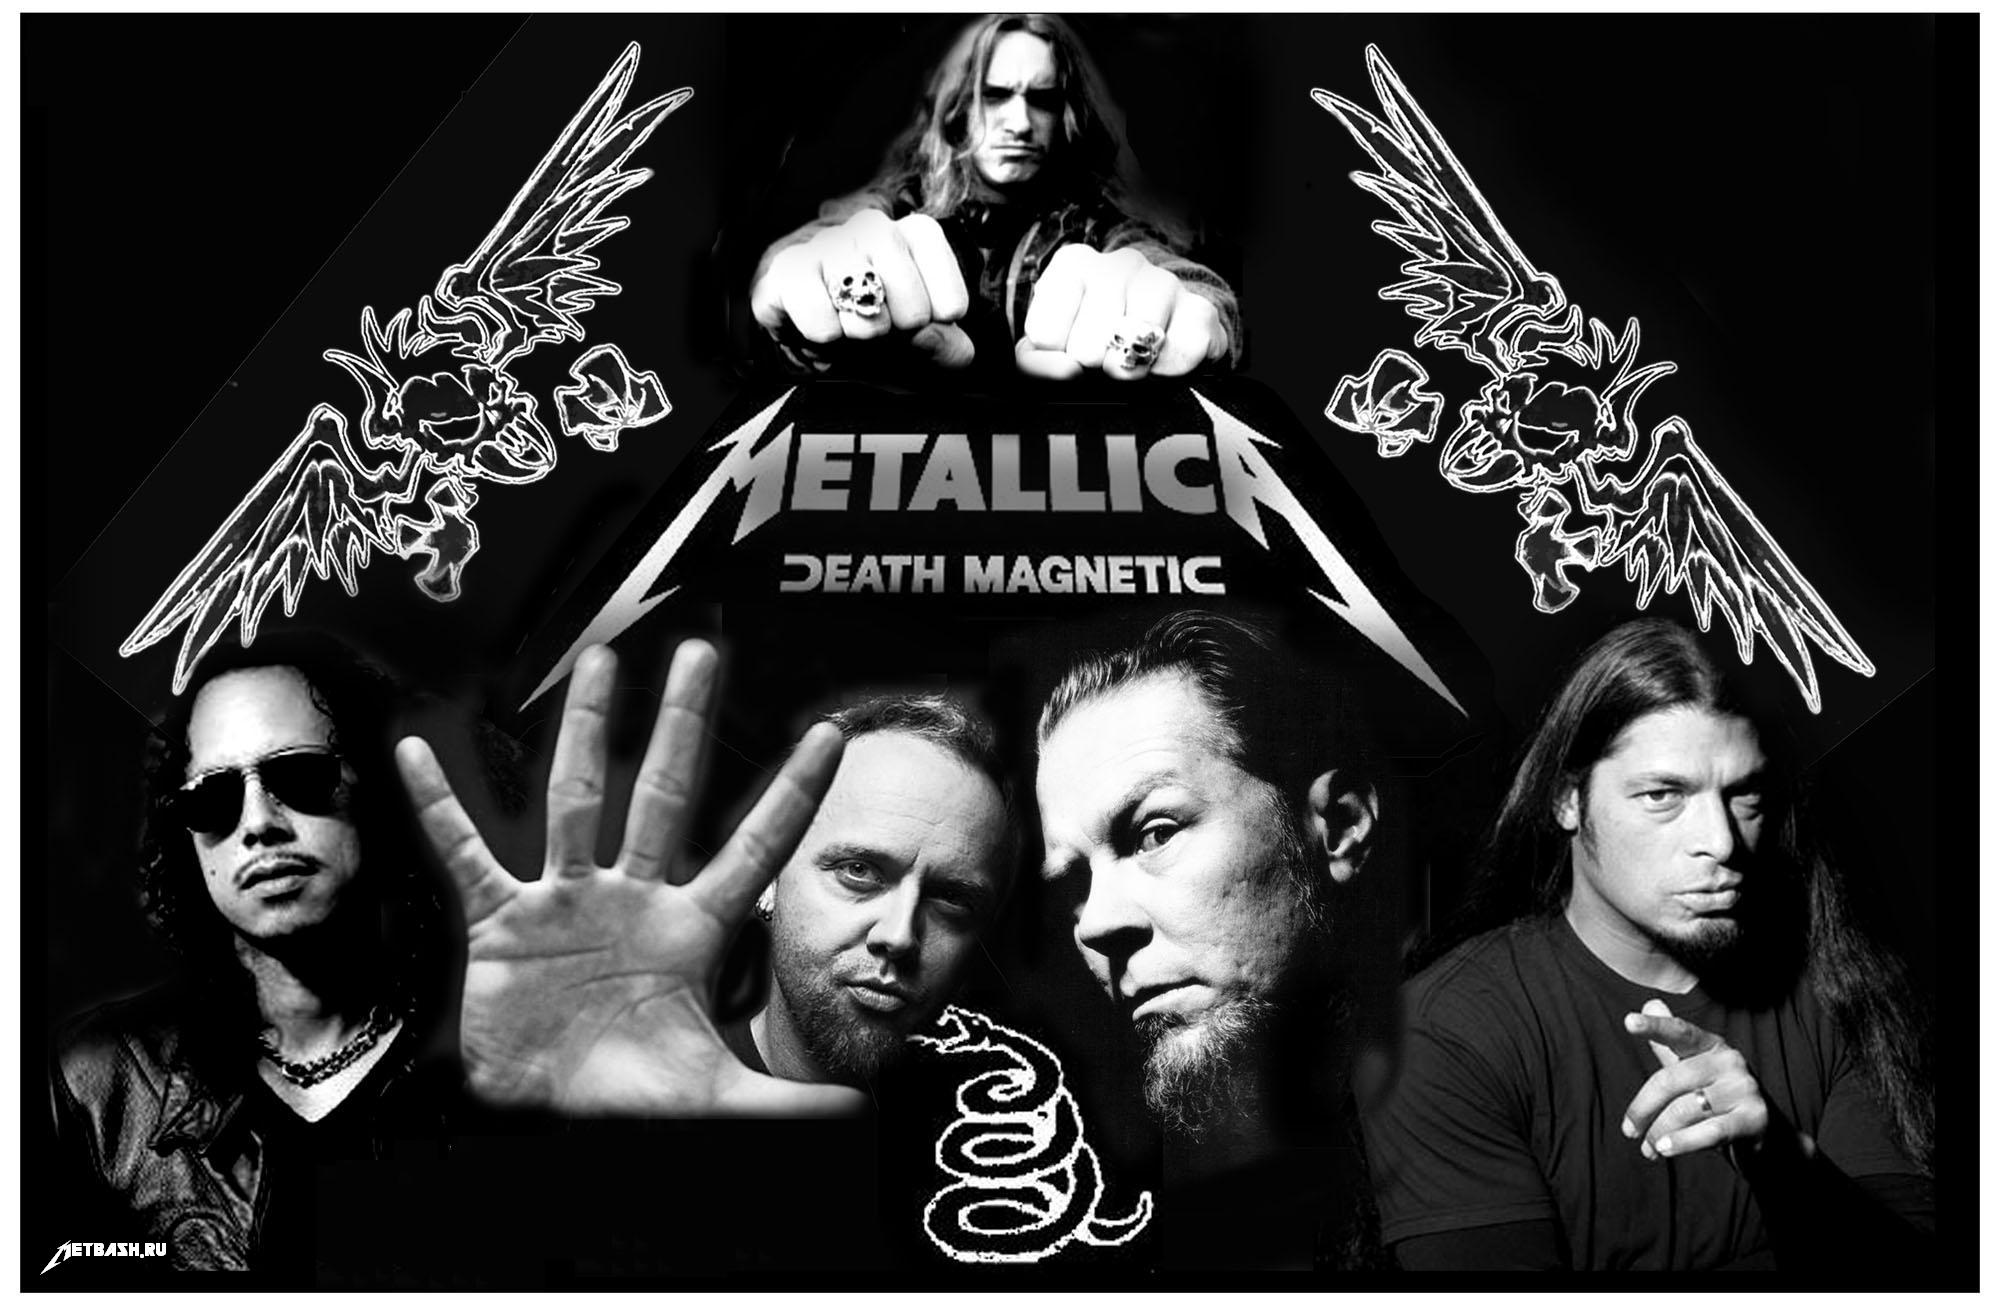 Best metallica death magnetic fondo de pantalla